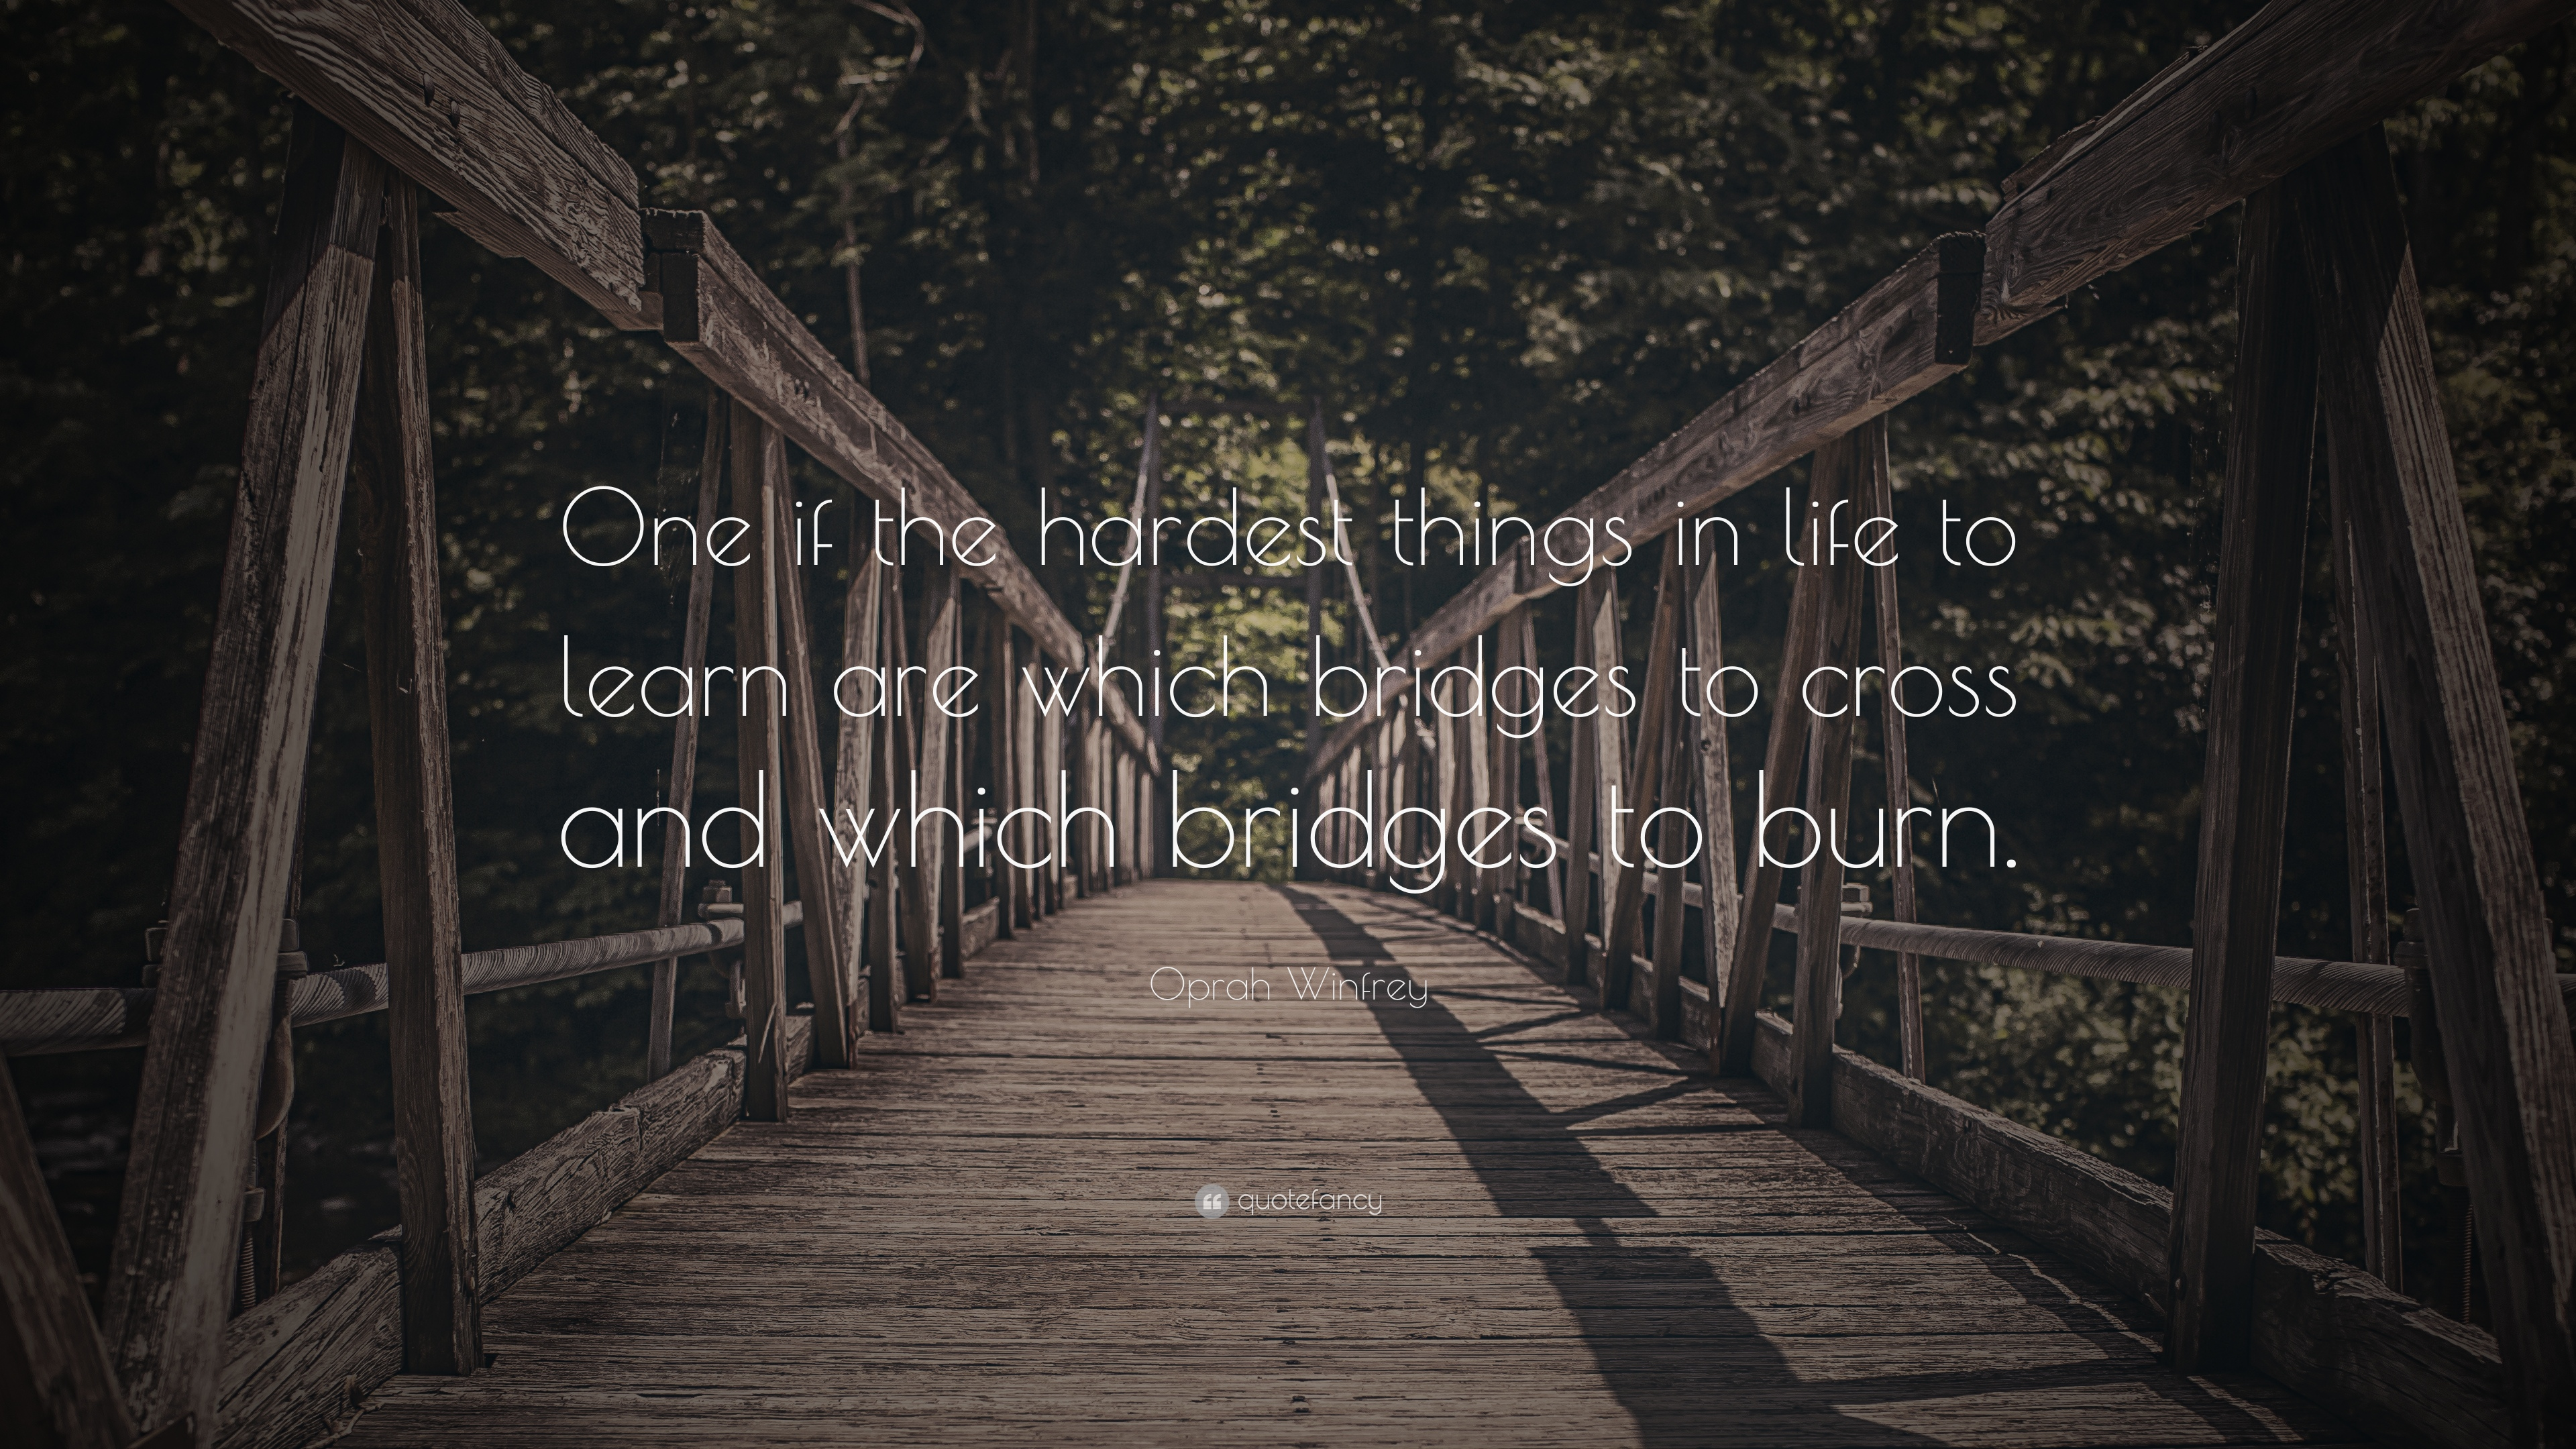 Oprah Winfrey Quote One If The Hardest Things In Life To Learn Are